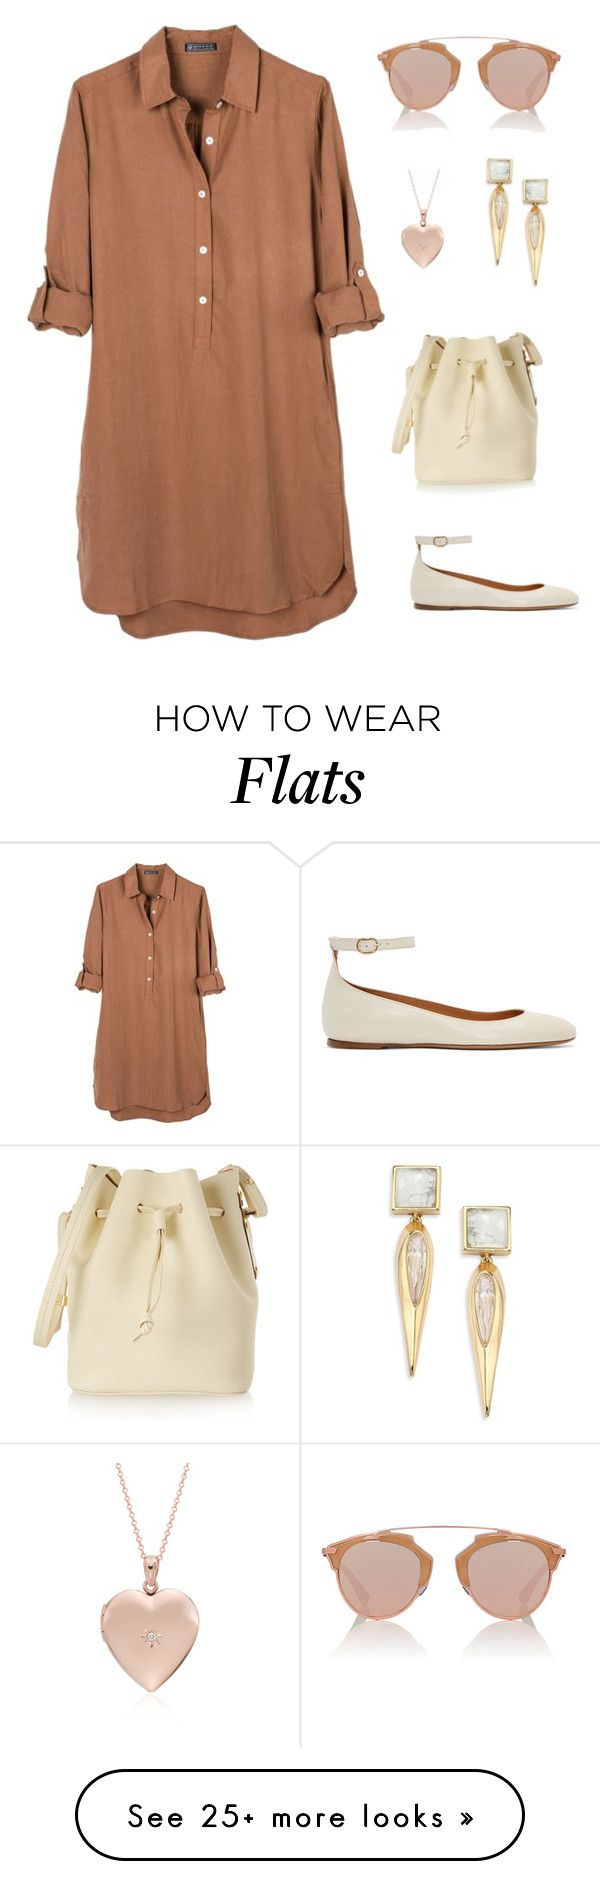 """""""Untitled #1500"""" by bushphawan on Polyvore featuring United by Blue, Sophie Hulme, Isabel Marant, Christian Dior, Blue Nile and Alexis Bittar"""